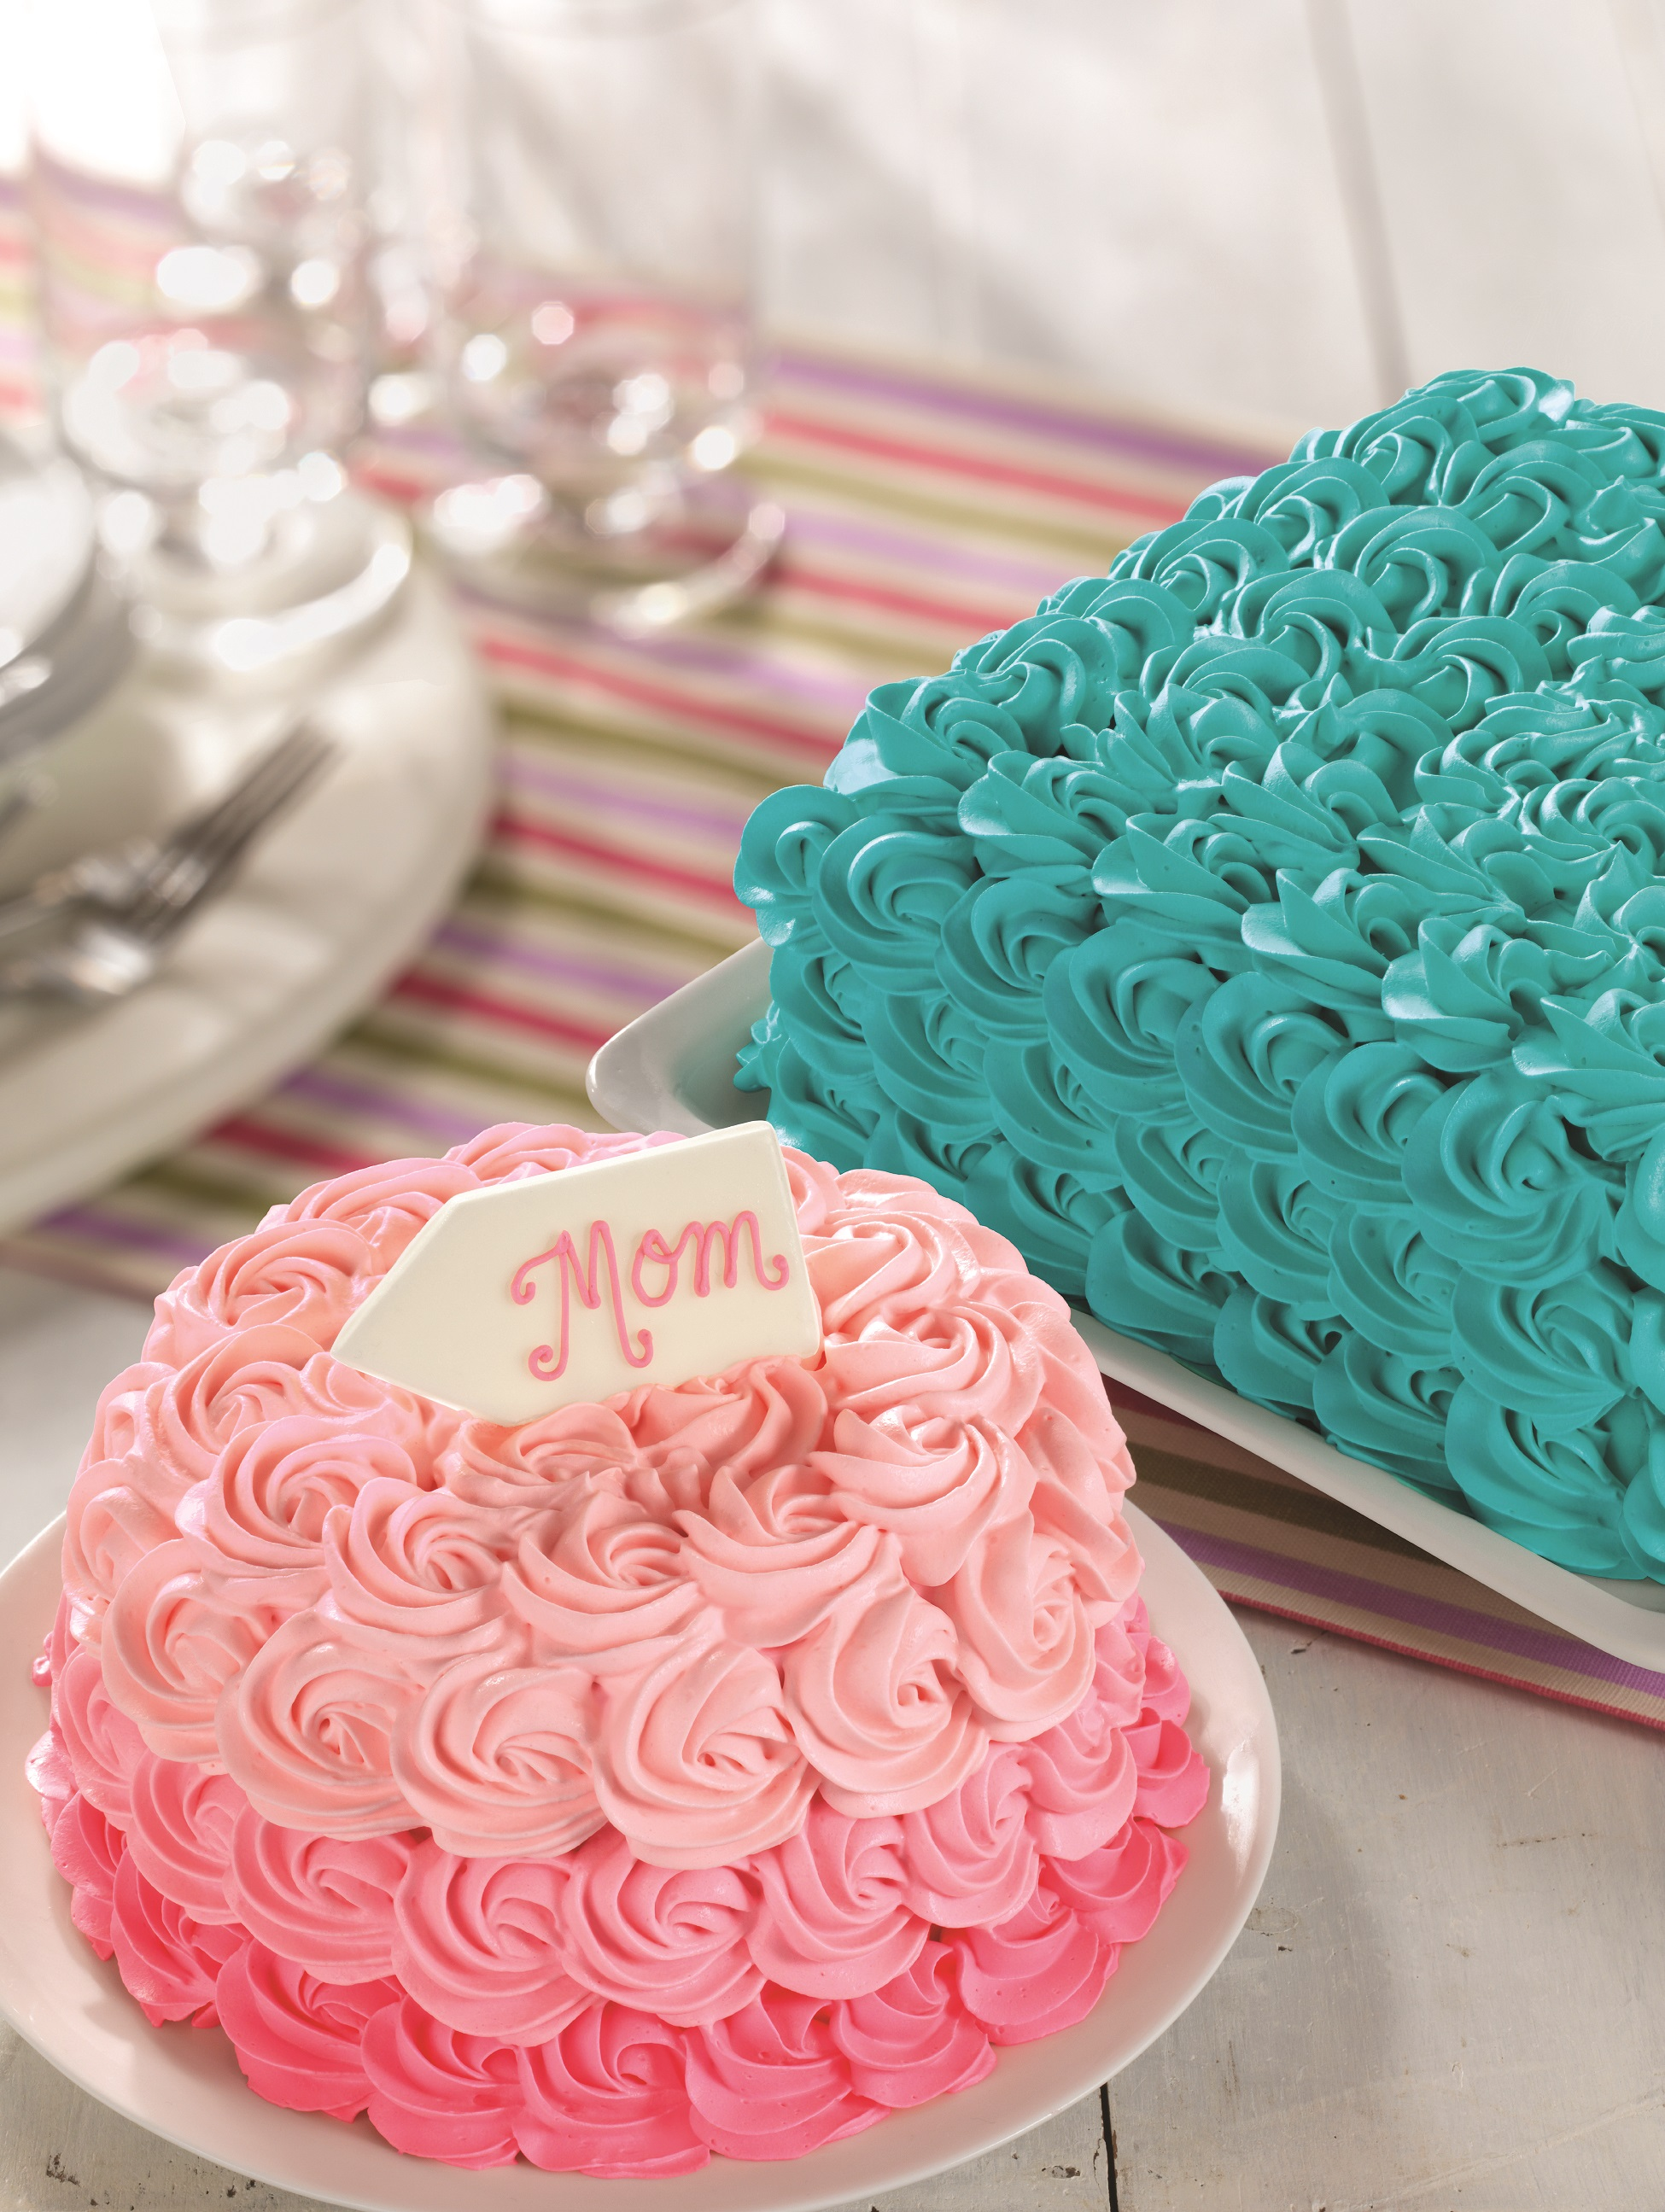 Baskin Robbins Design Your Own Cake : BASKIN-ROBBINS IS CELEBRATING MOMS NATIONWIDE WITH MAY ...